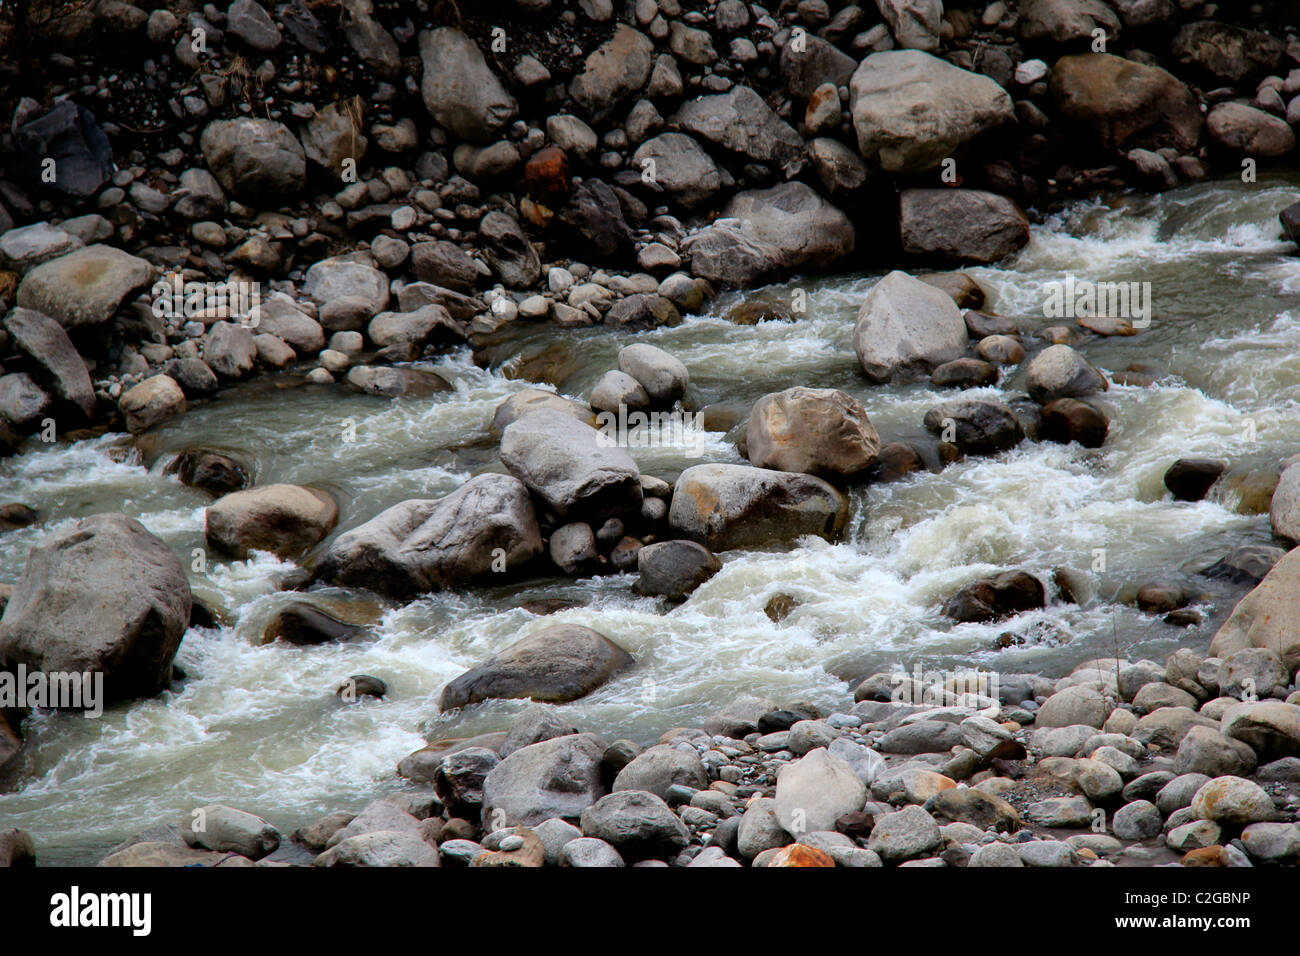 Mountain rivers of Manali, Himachal Pradesh,India - Stock Image